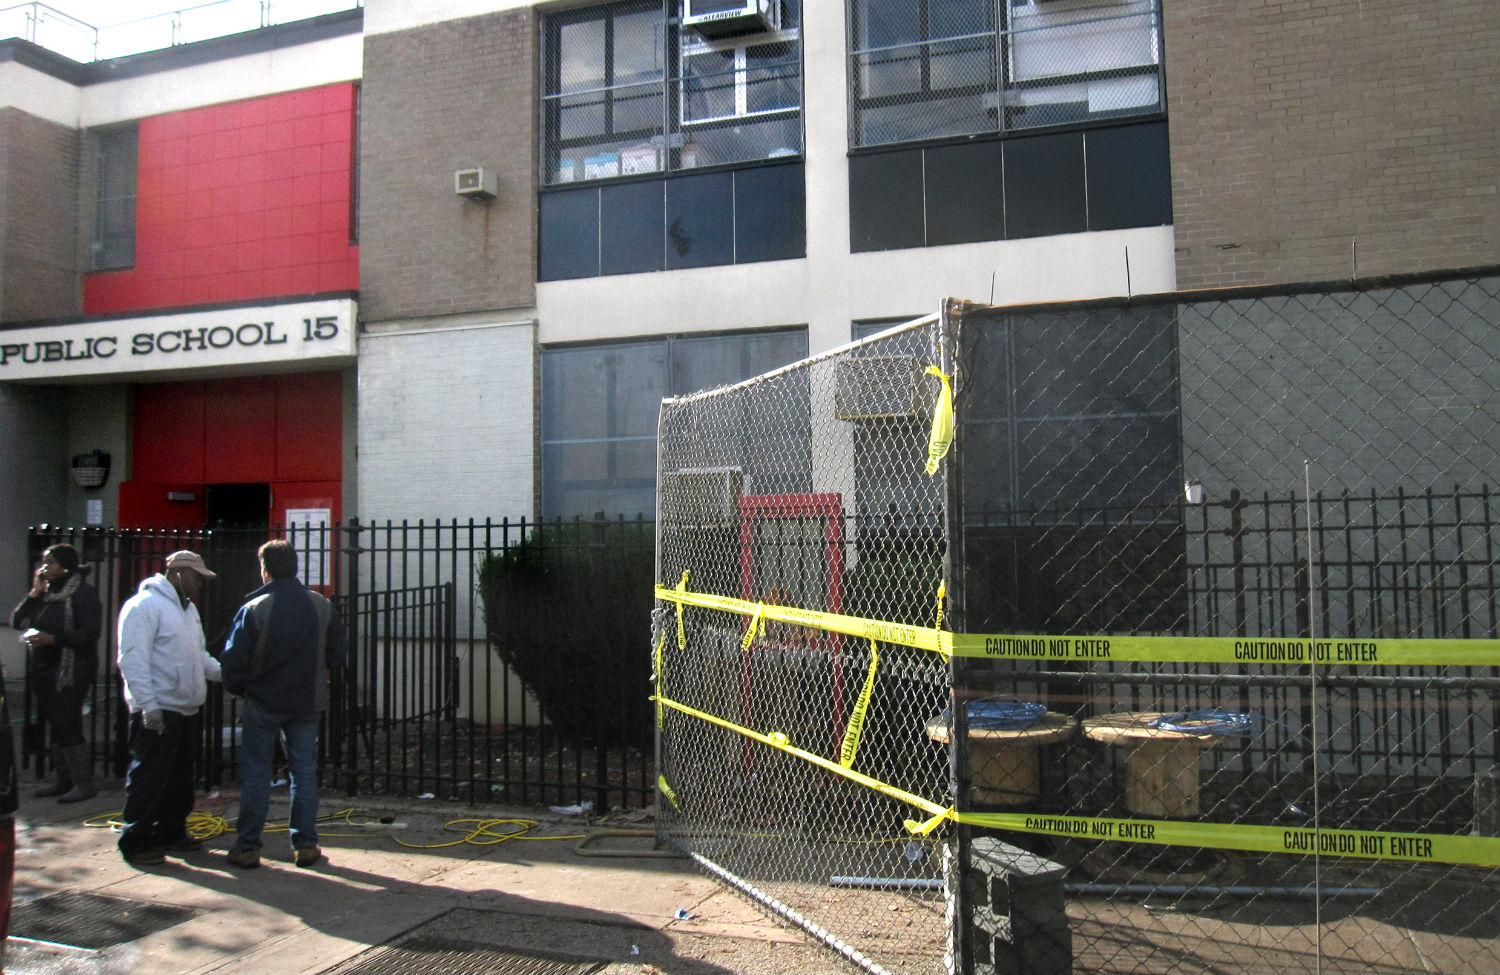 In-the-weeks-following-Hurricane-Sandy-apartment-buildings-and-schools-across-the-Red-Hook-section-of-Brooklyn-were-left-without-power.-AP-PhotoBeth-Harpaz